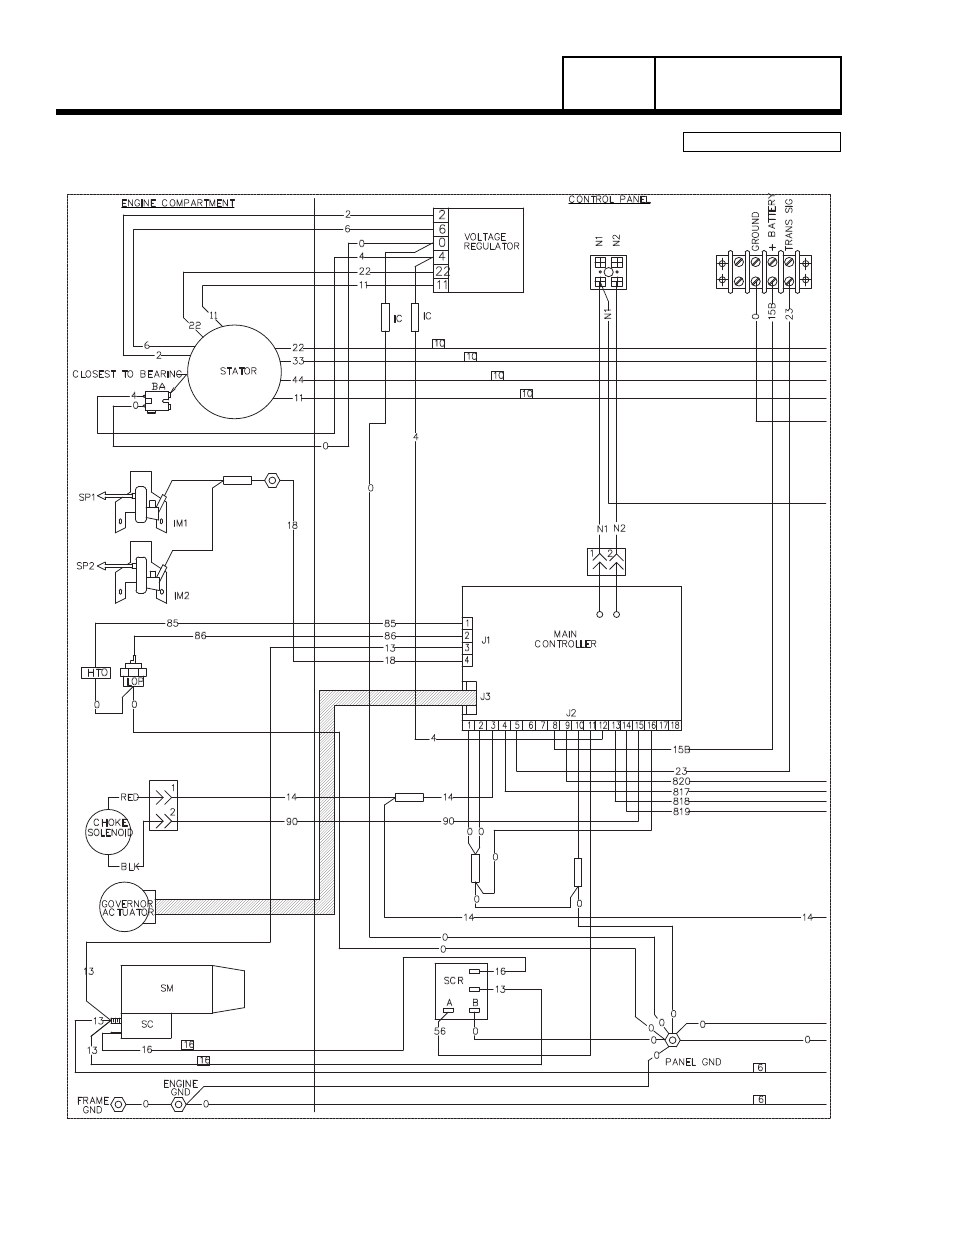 8 Kw Generac Wiring Diagram Trusted Schematics Diagrams Cb750k3 Fuel Pump Relay 17 Home Standby Group G Part 7 Power Rh Manualsdir Com Manuals 20kw Schematic